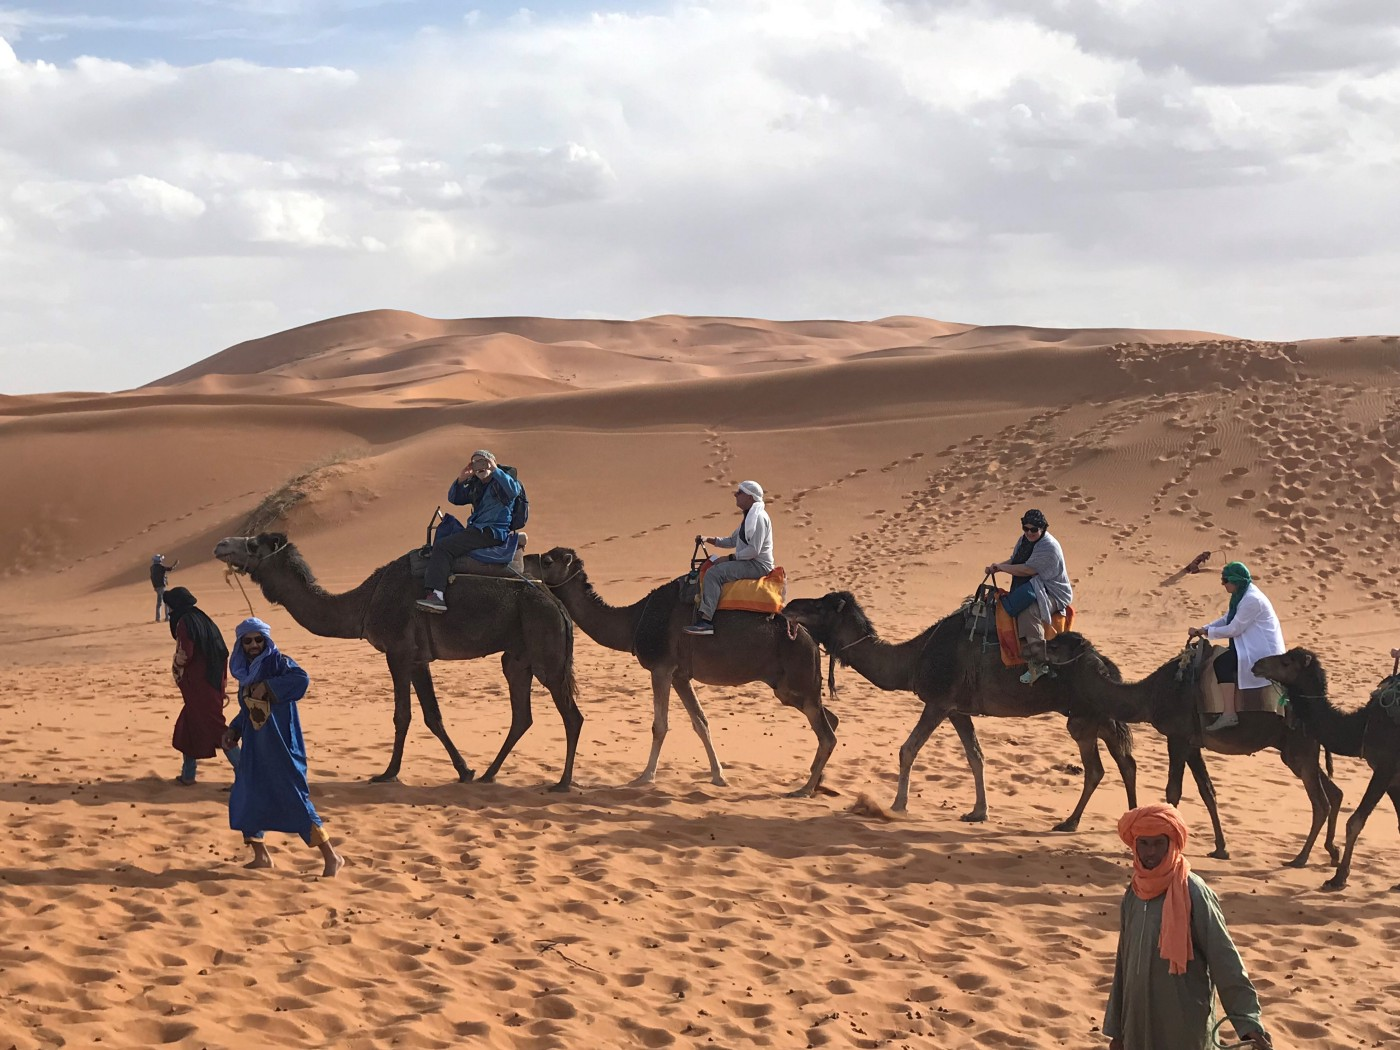 Four people riding camels in the desert with three people walking beside them.